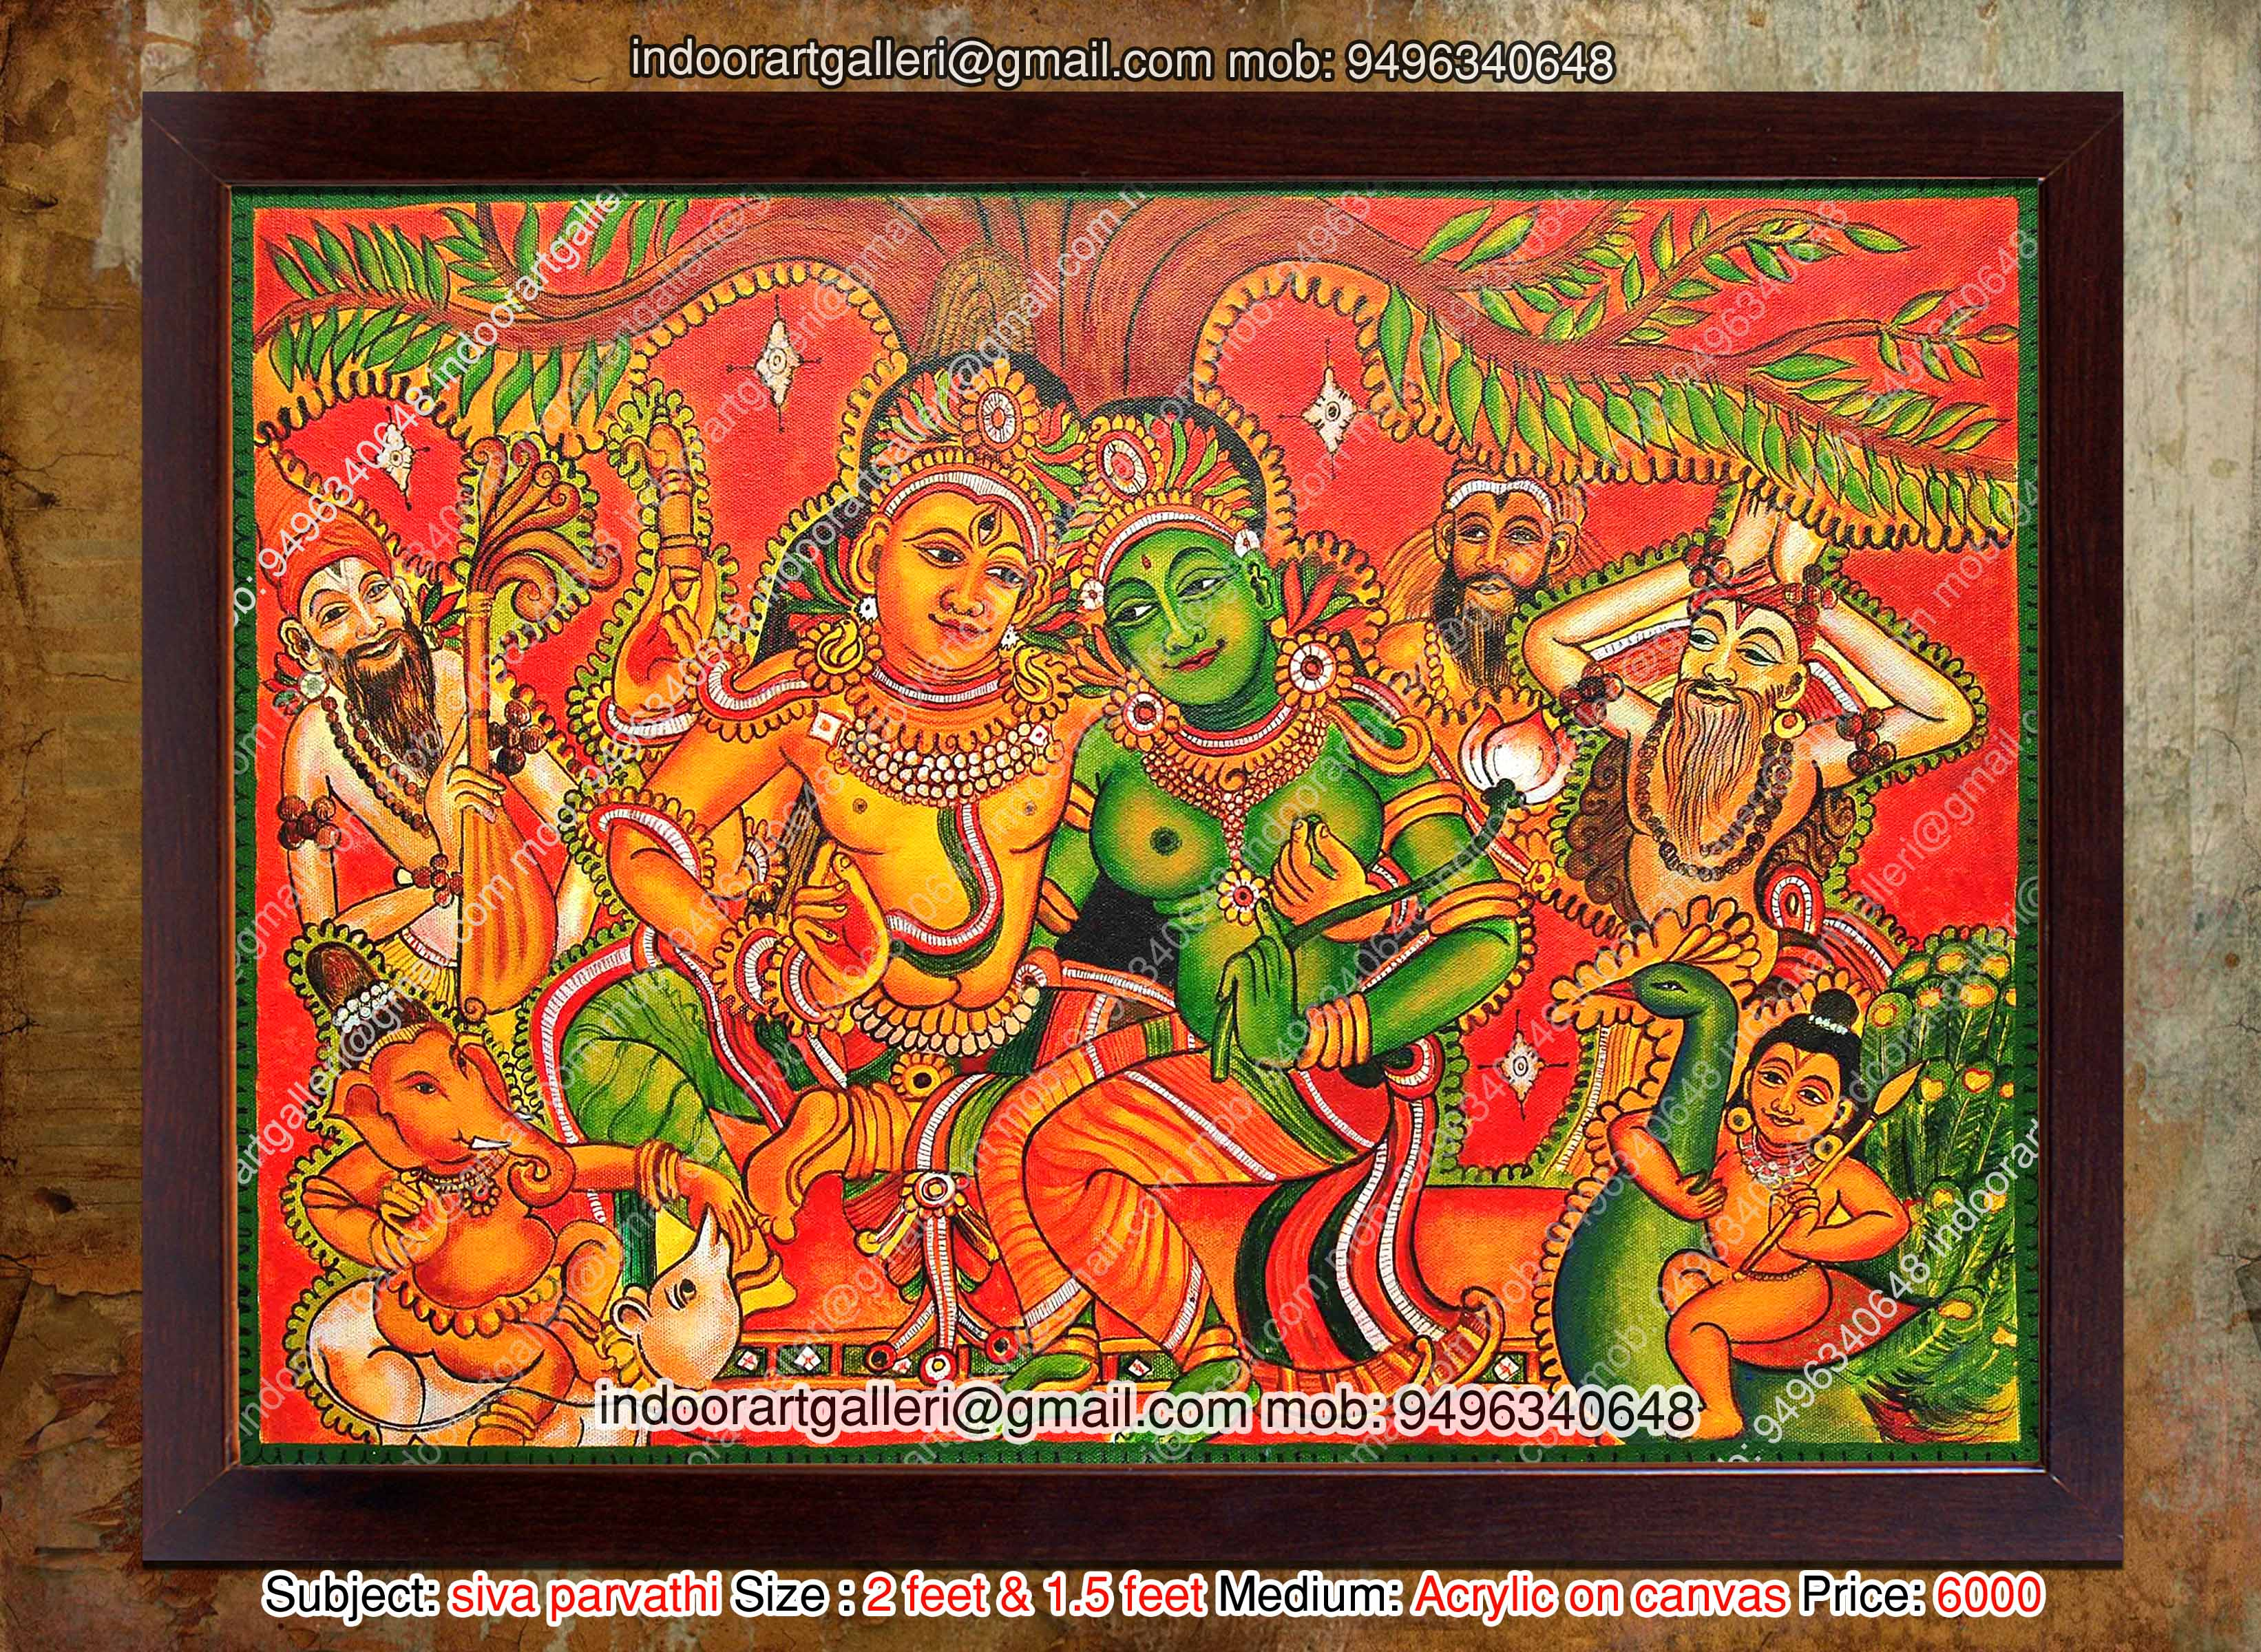 siva parvathi mural painting by indoorartgalleri on deviantart